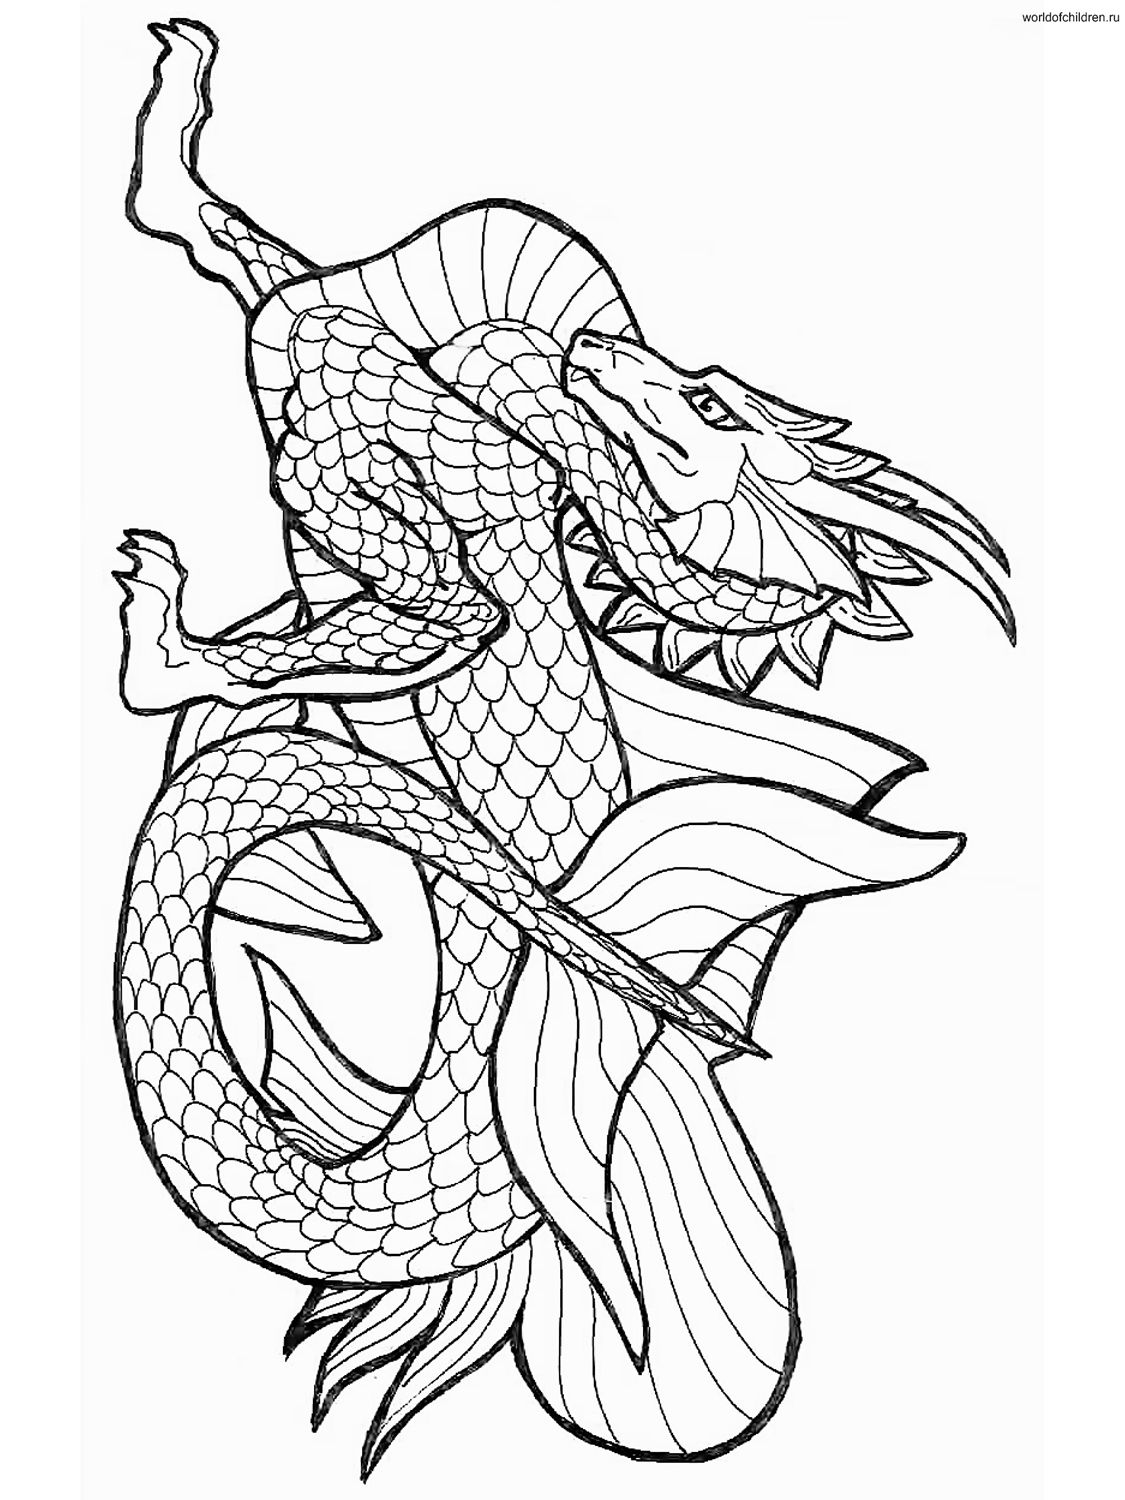 dragon coloring pages for adults-sTFB   Dragon coloring ...